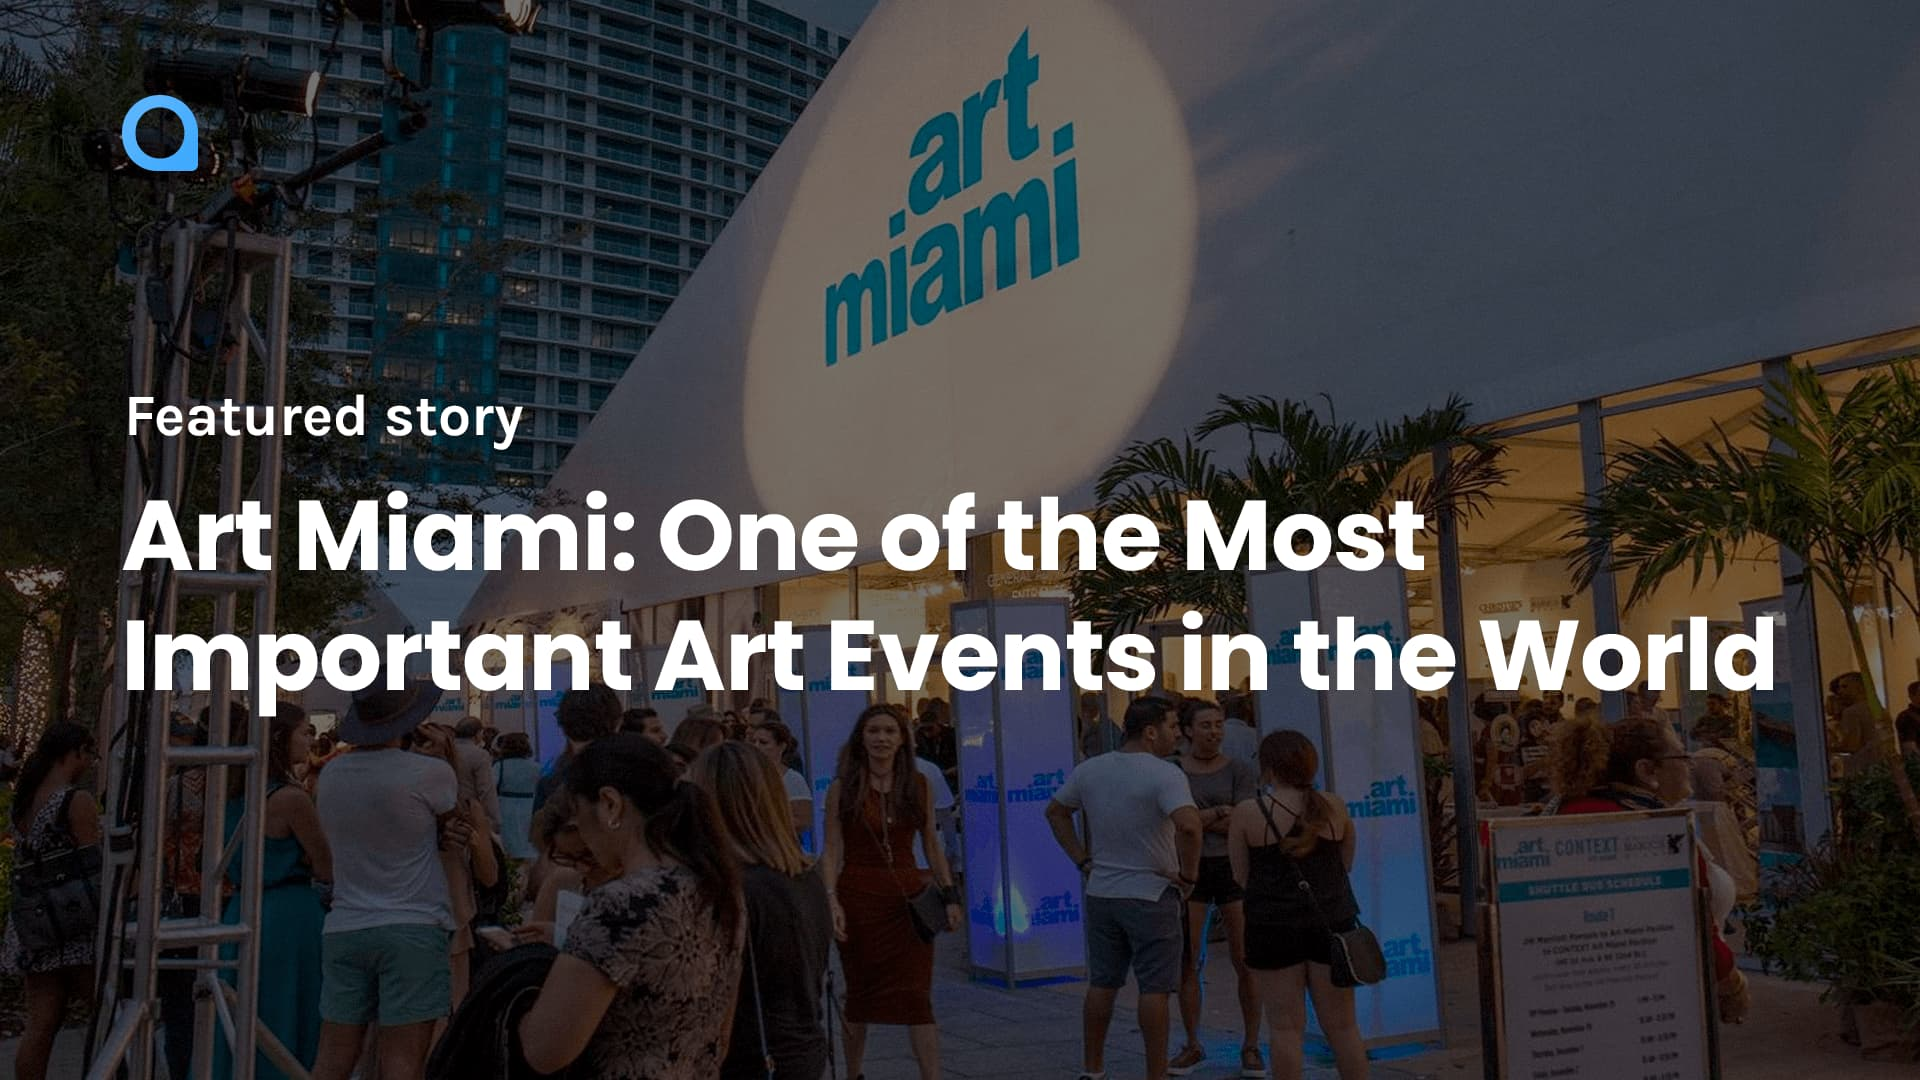 Art Miami: One of the Most Important Art Events in the World